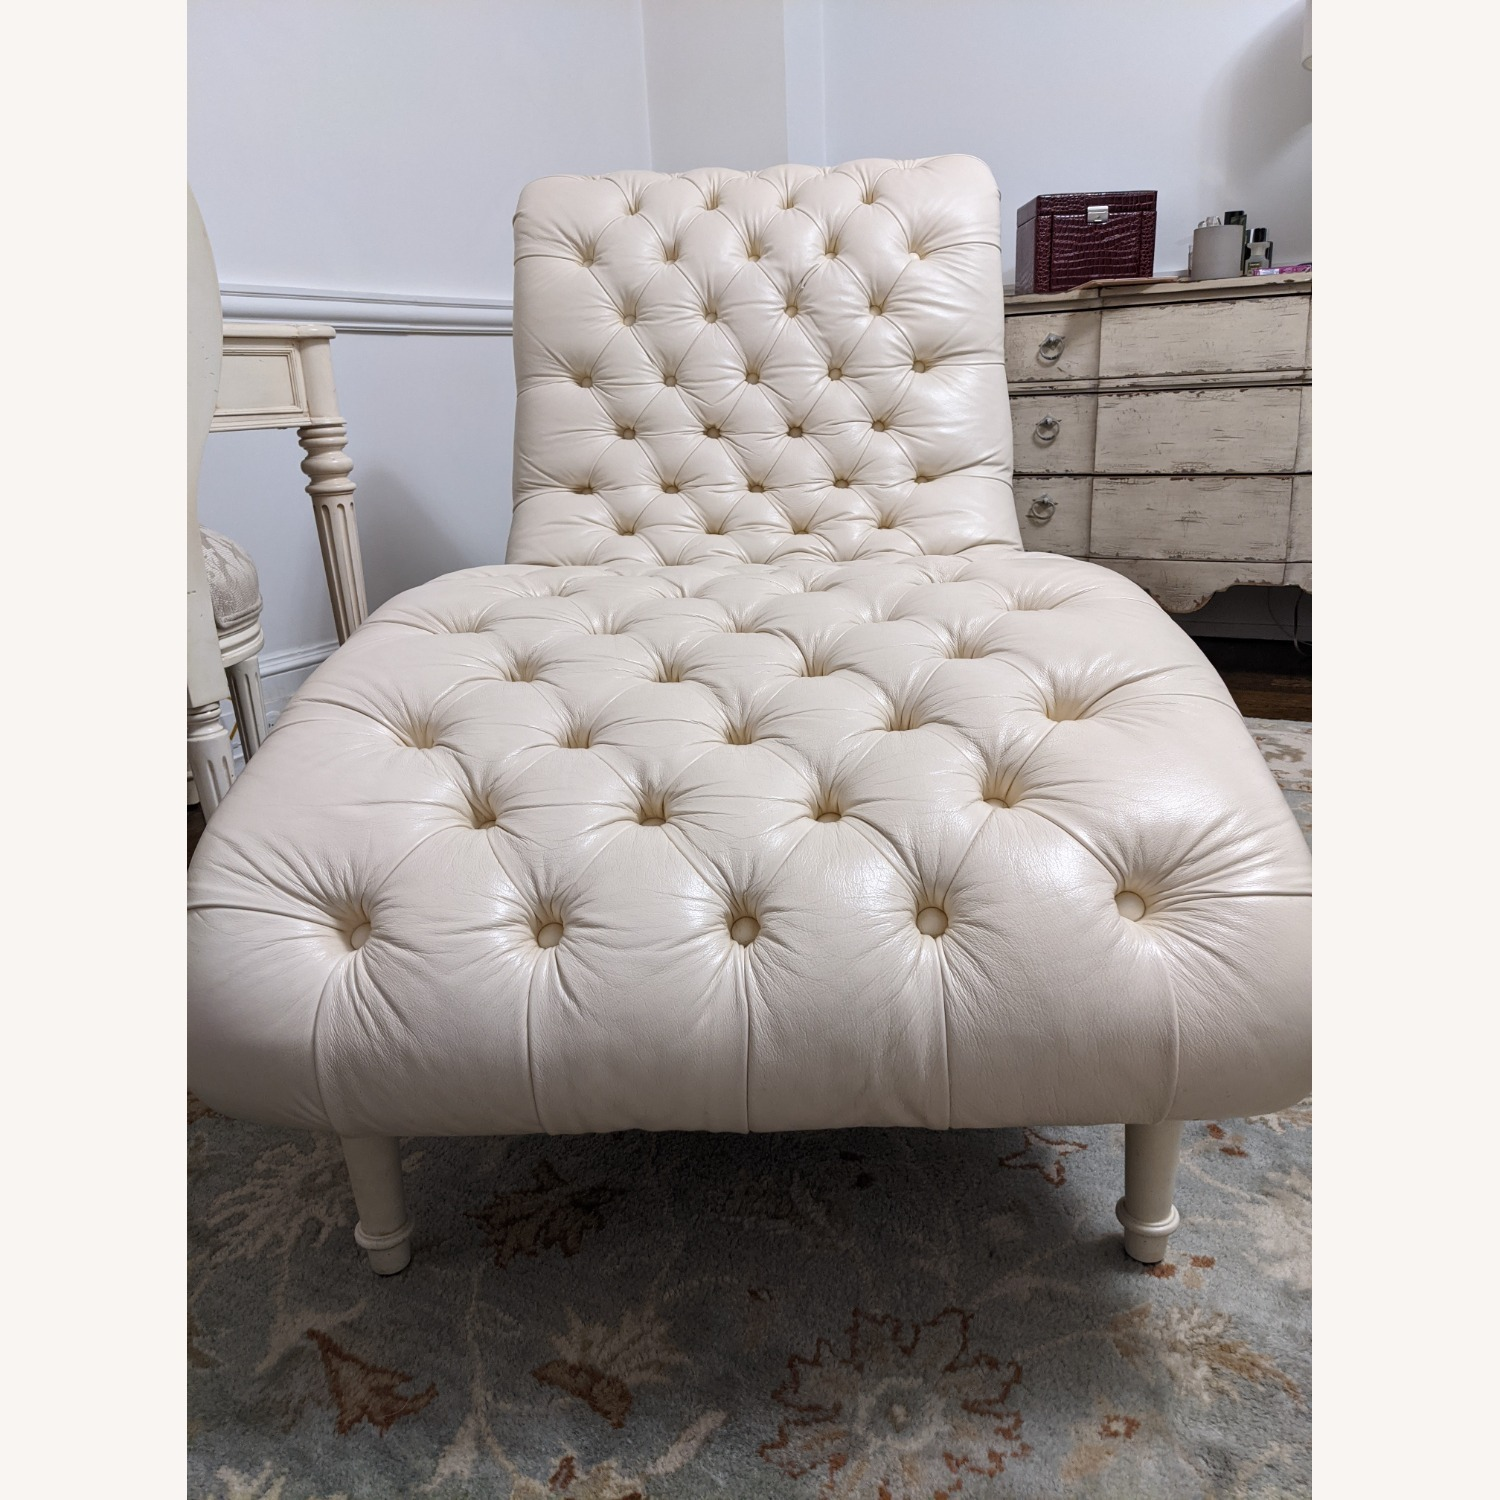 Ethan Allen Leather Chaise Long - image-7